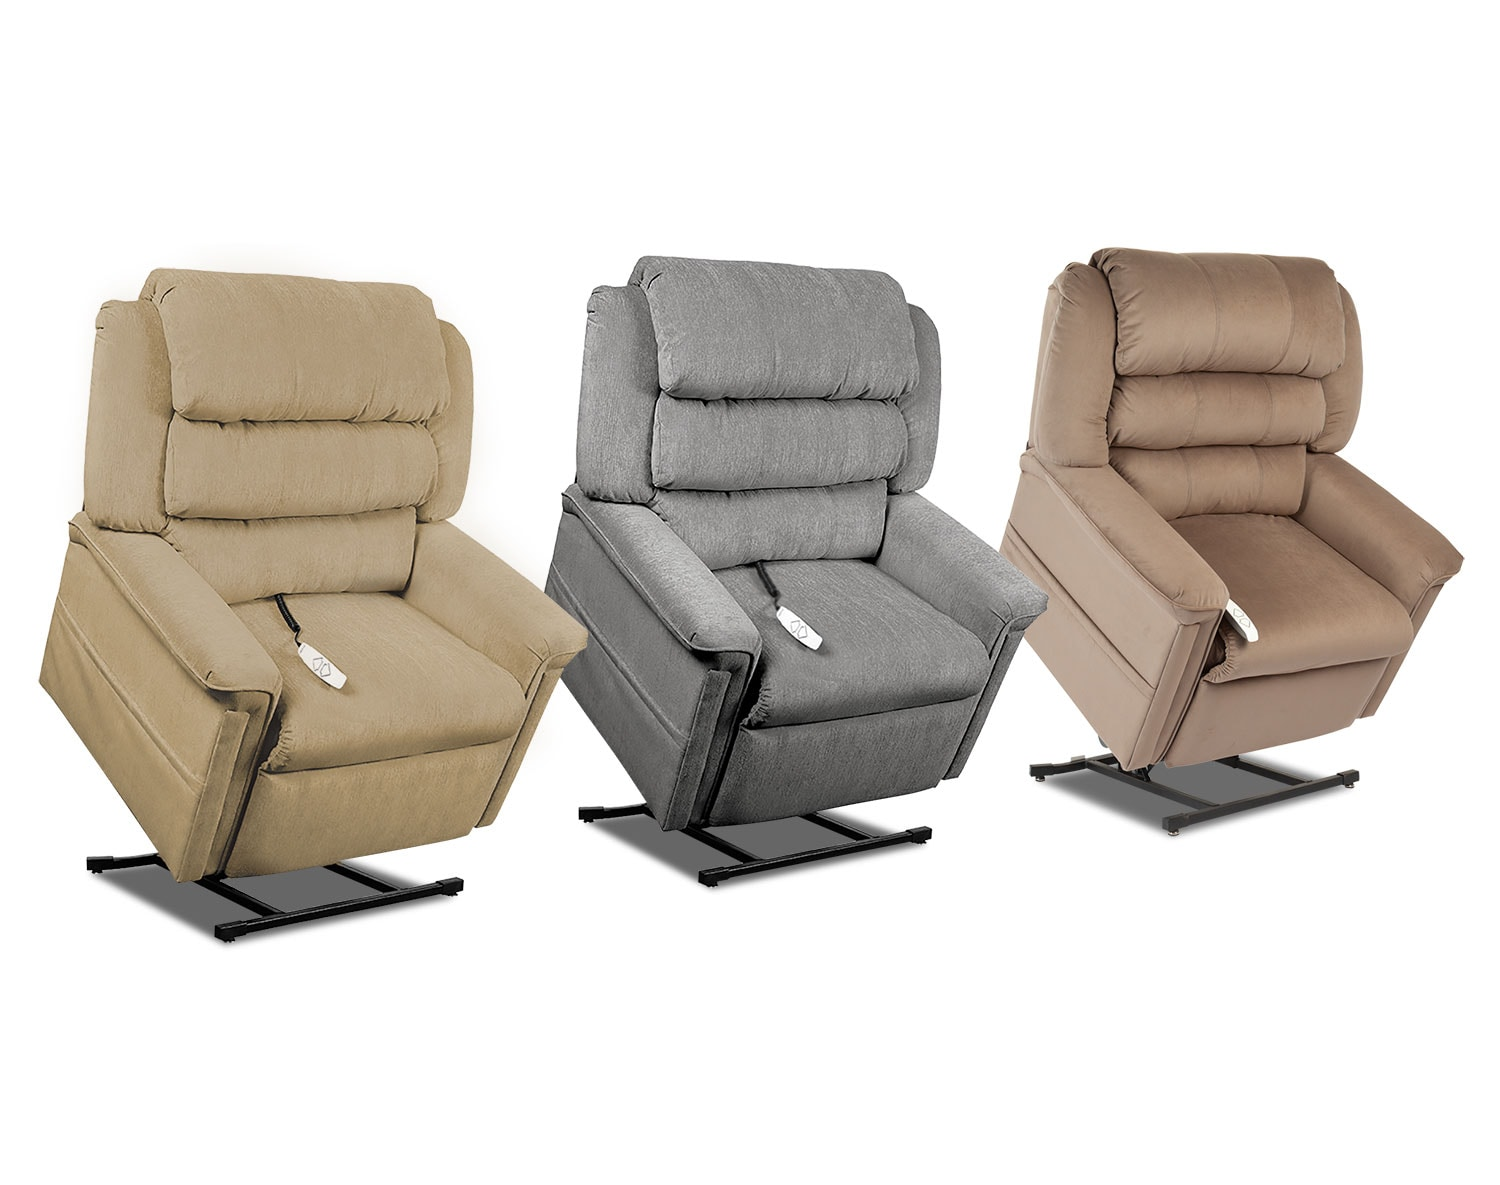 The Sally Lift Chair Collection